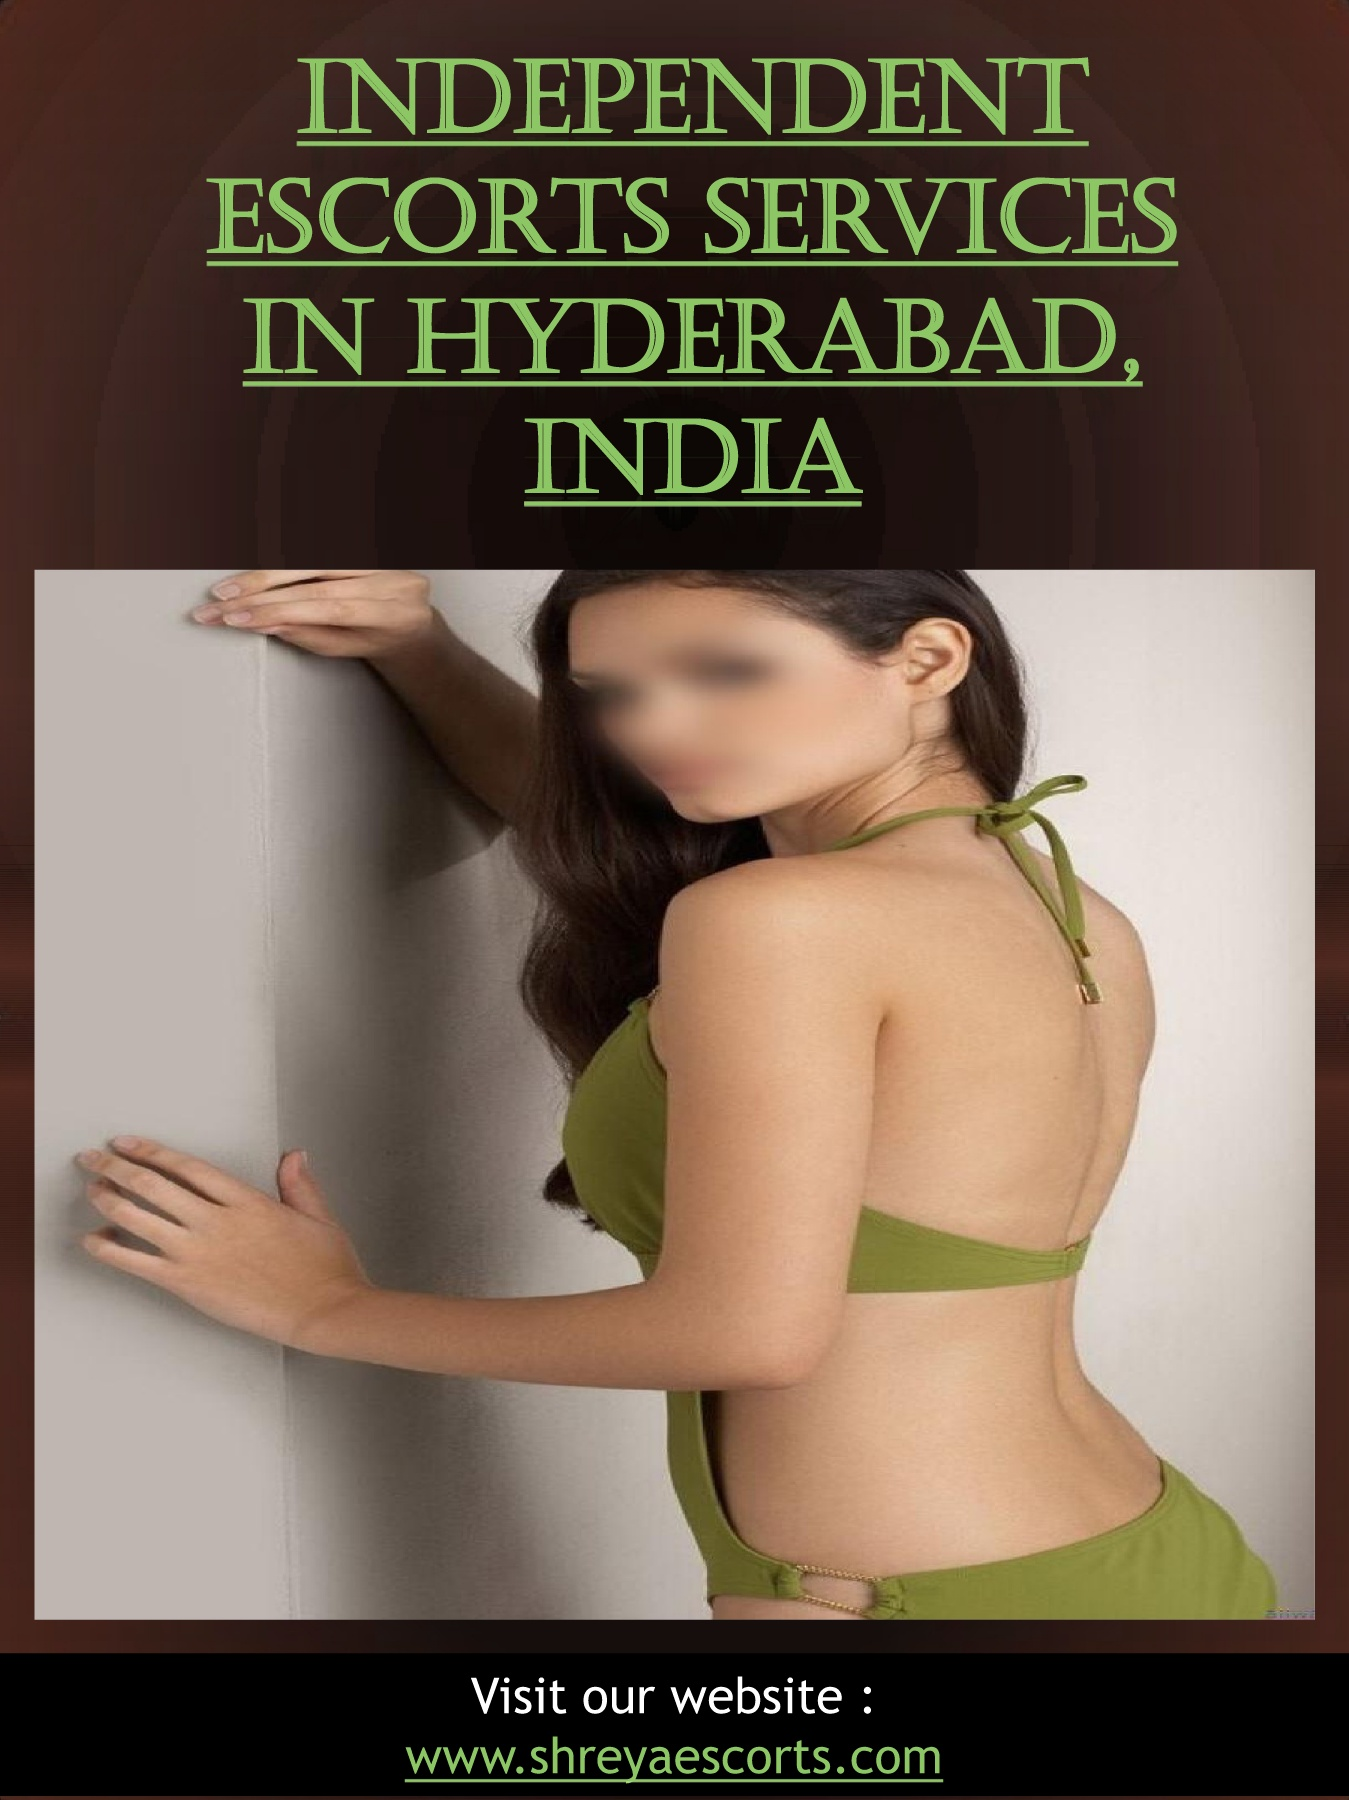 Independent escorts services in hyderabad | 9866962510 |shreyaescorts.com |  AnyFlip